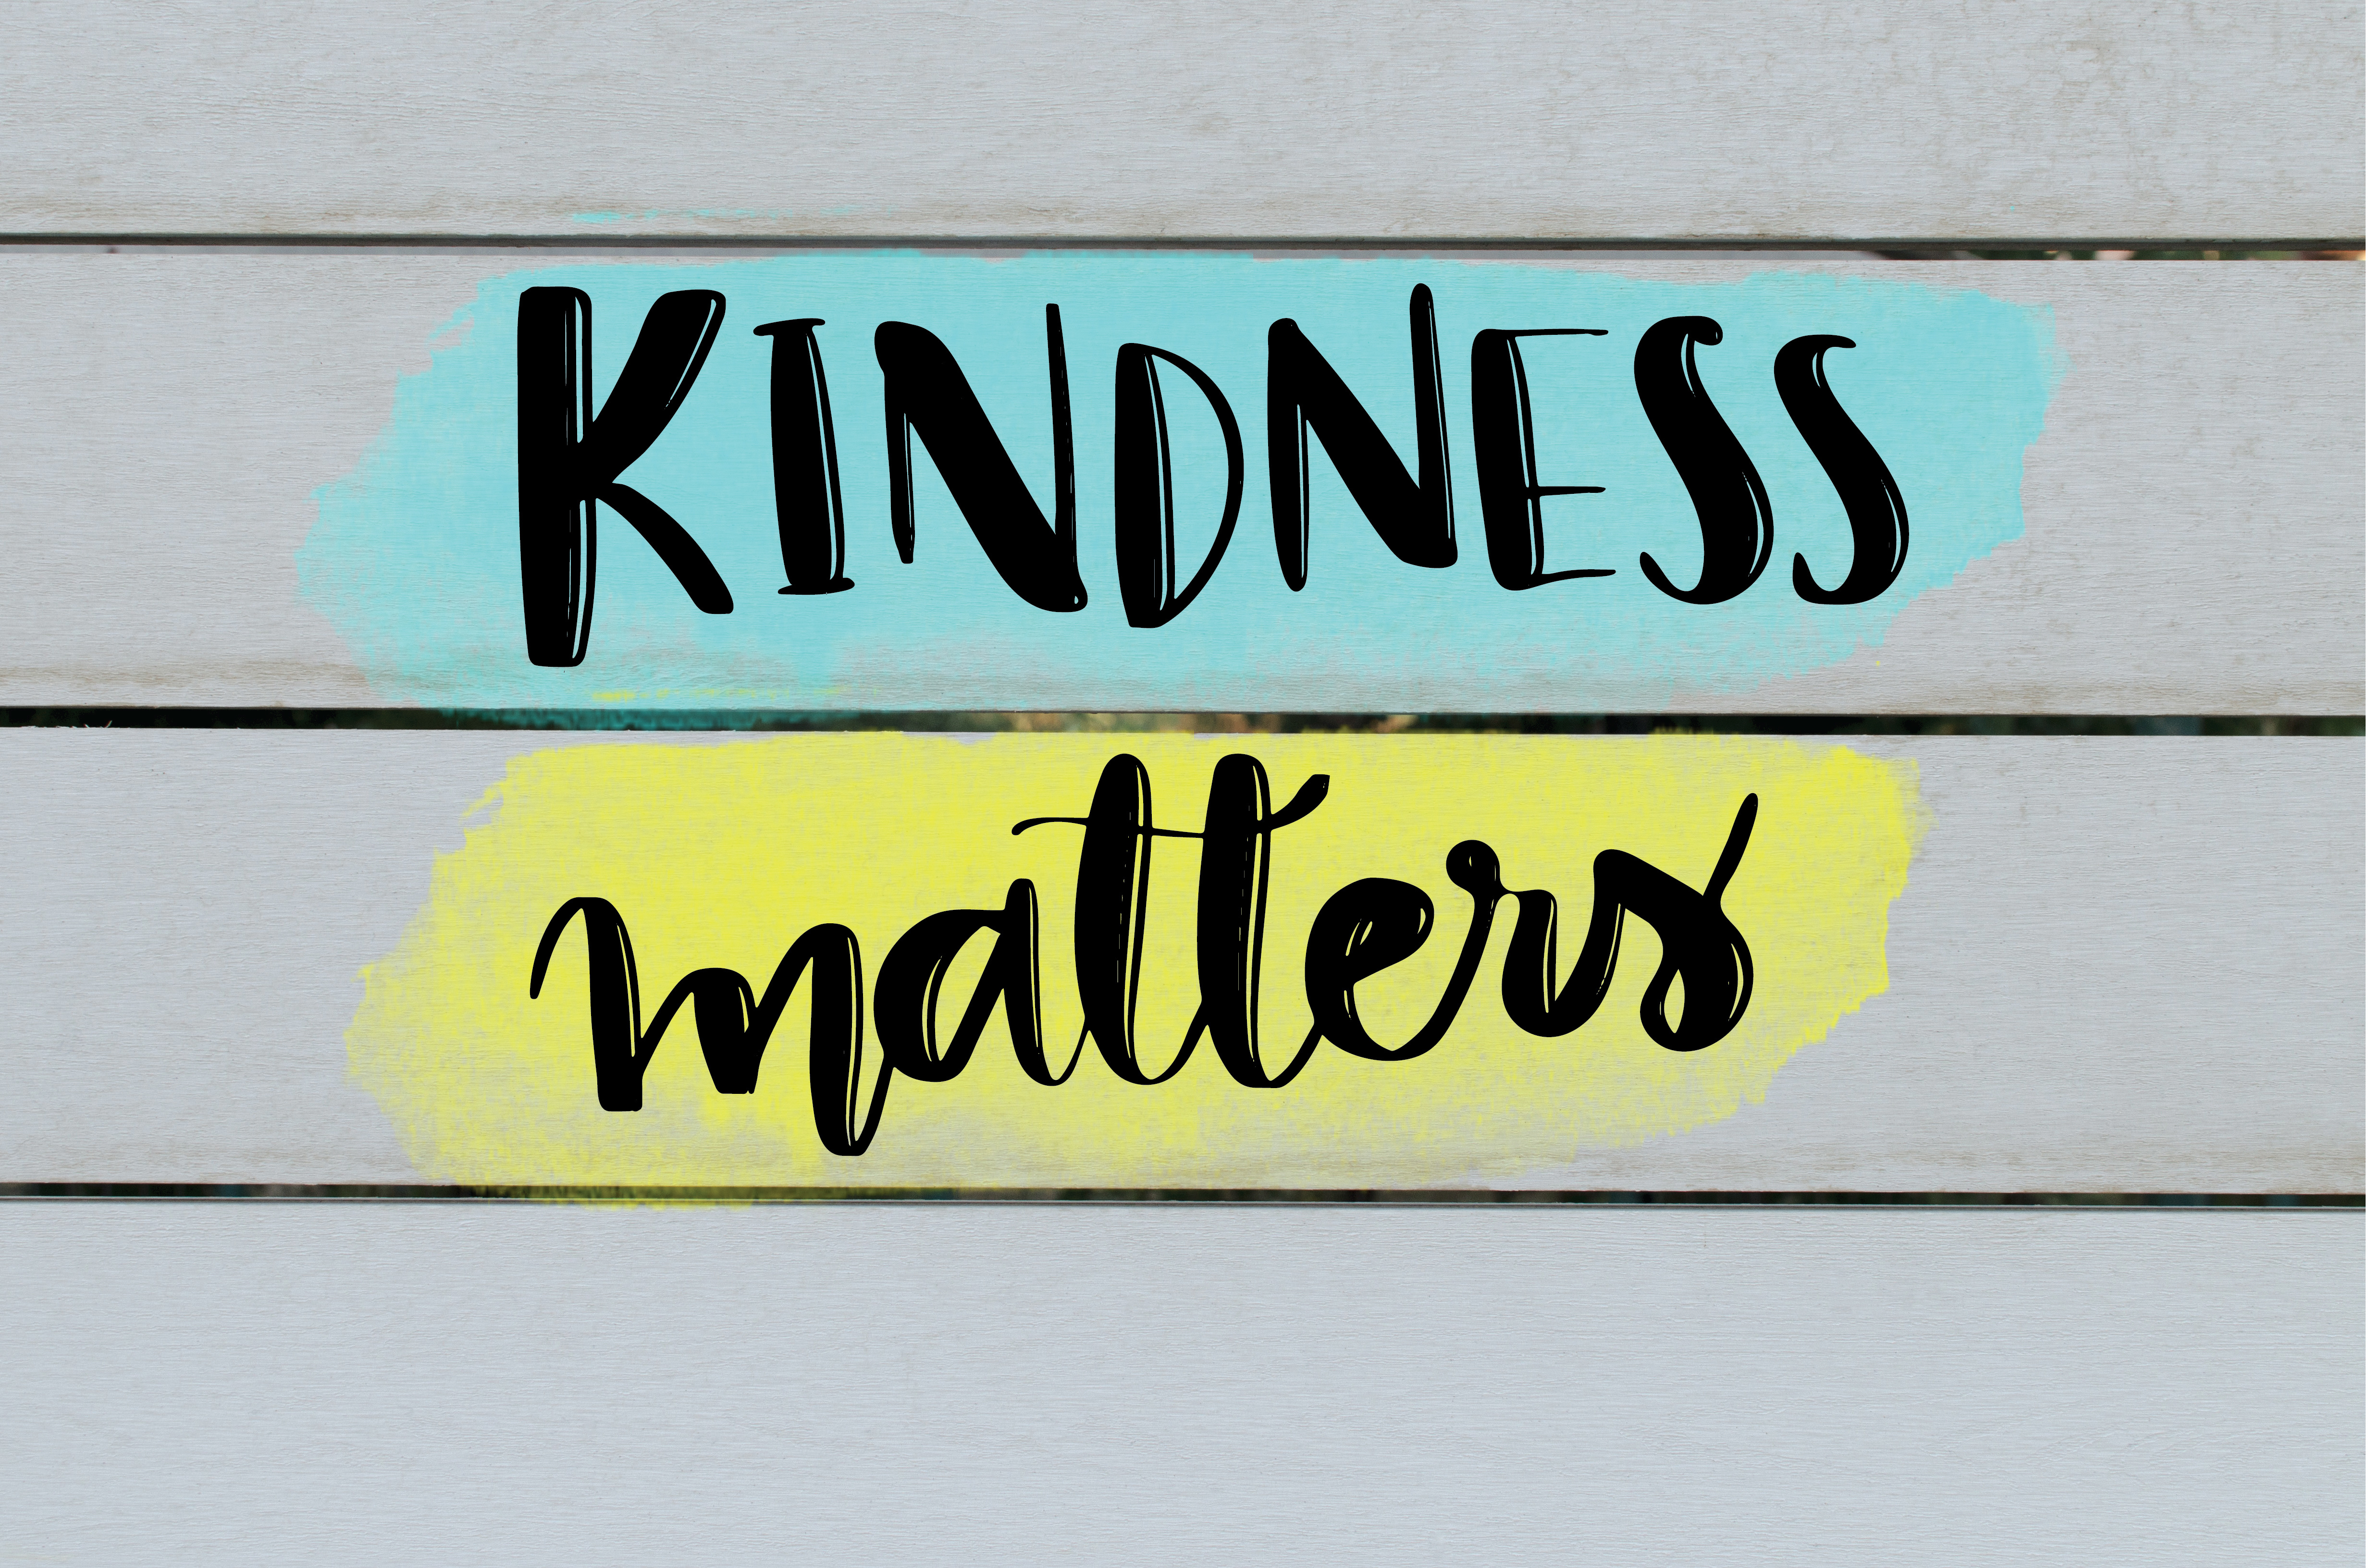 Kindness in the classroom matters